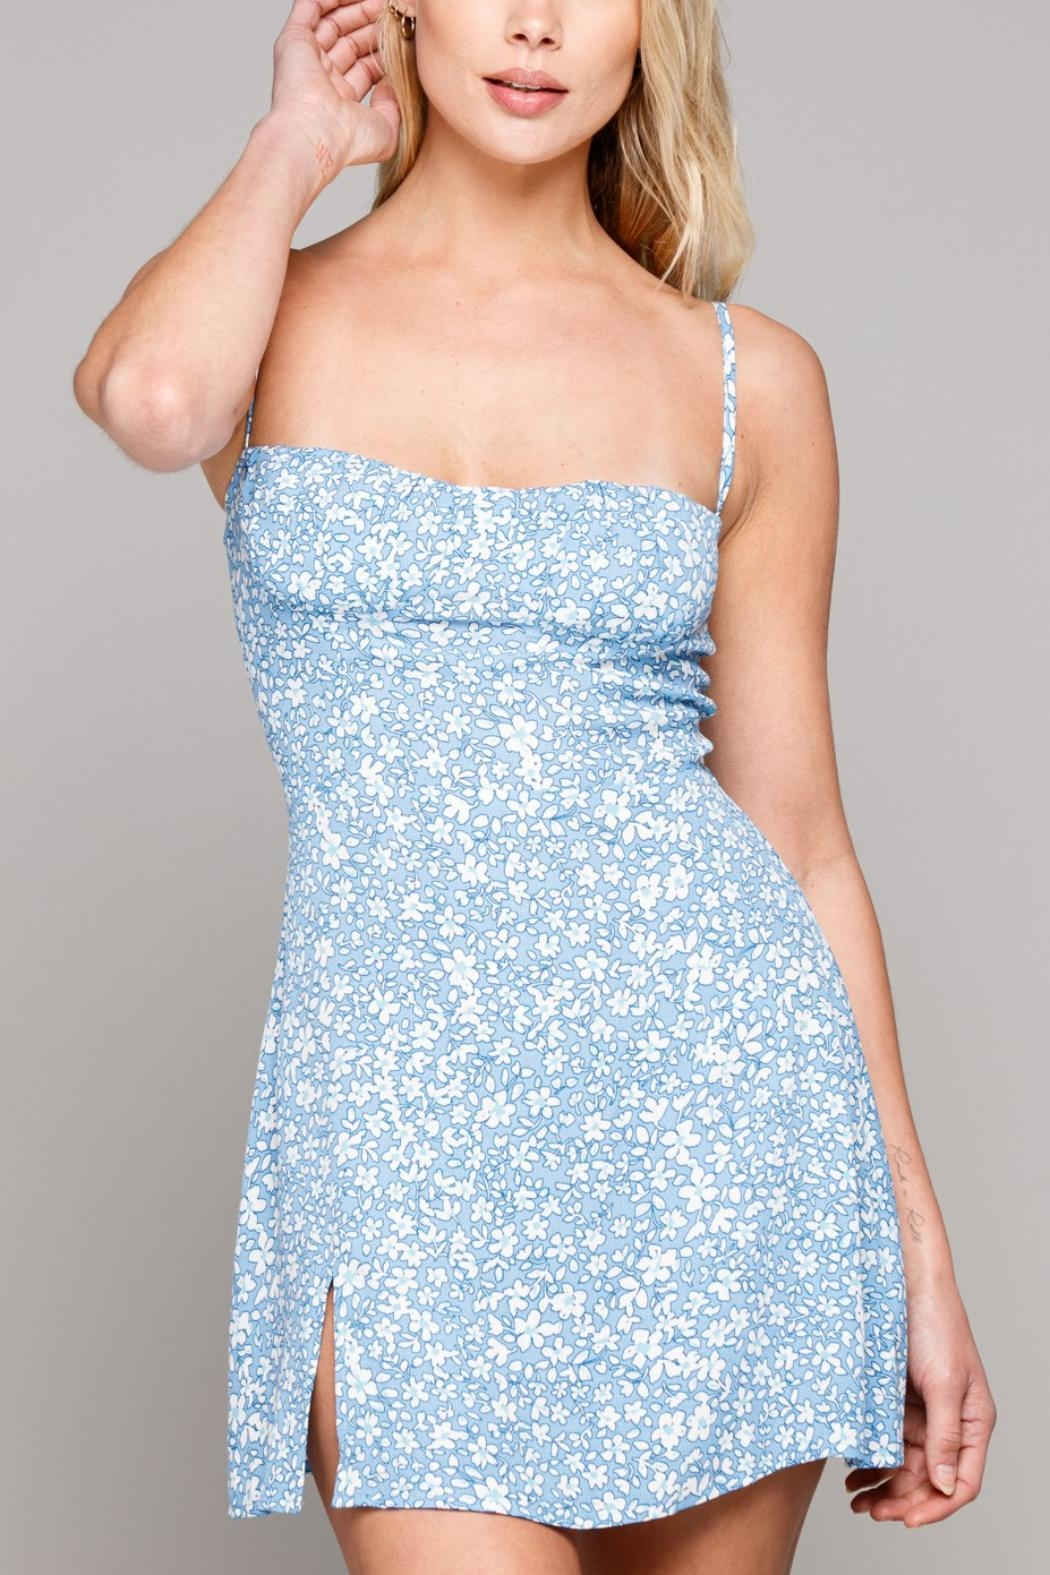 Pretty Little Things Floral Bustier Dress - Main Image